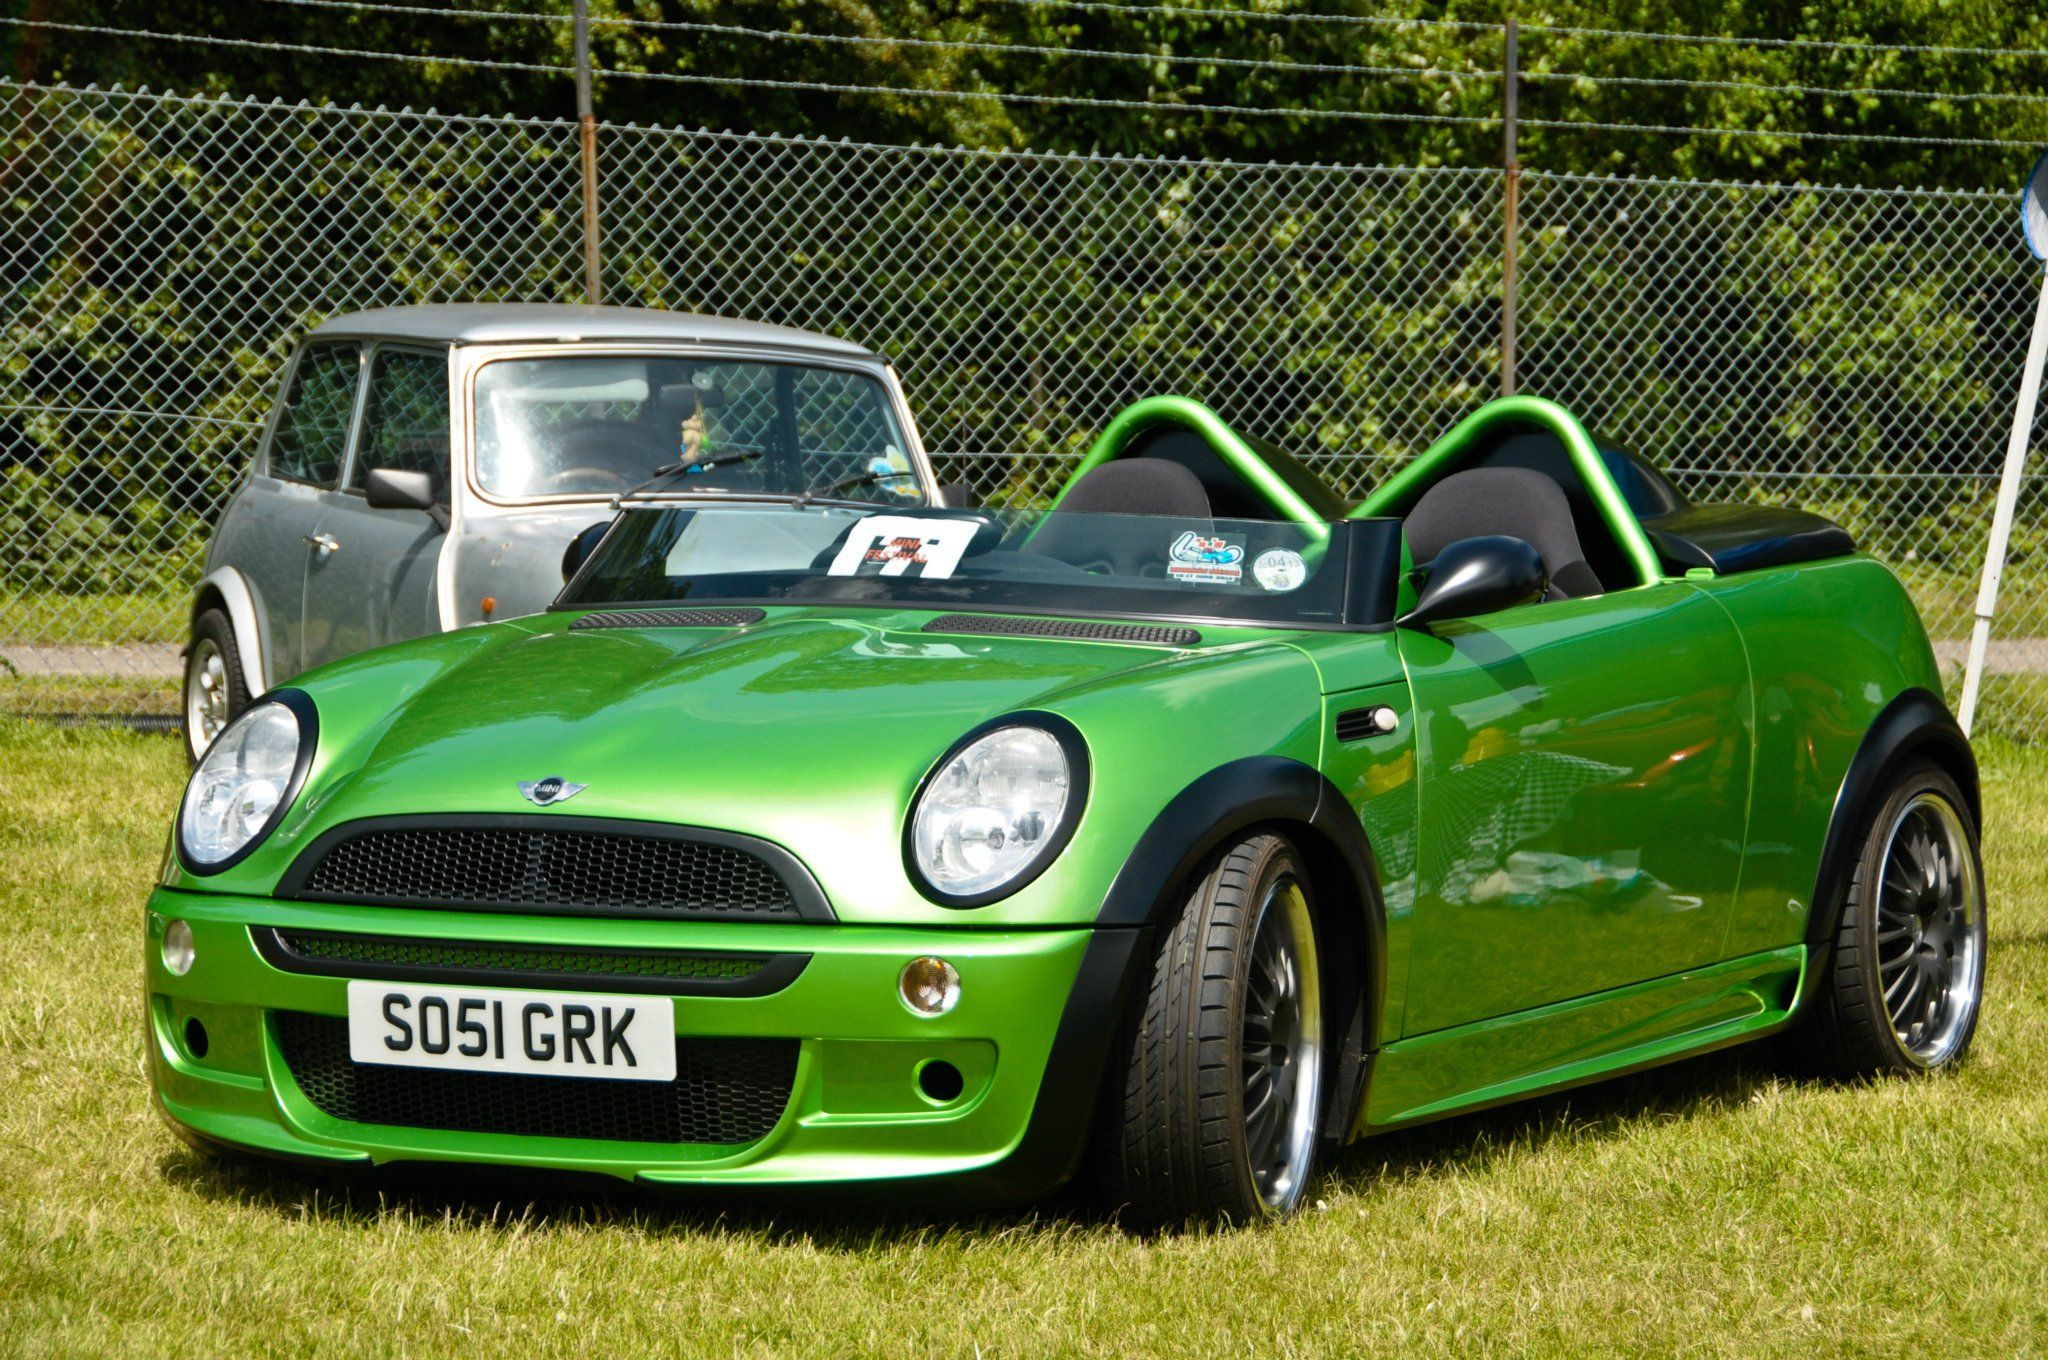 What Do You Think Of This One Off Lime Green Convertible Spotted At Mini Brands Hatch Festival Mini Cooper Mini Cars Mini Convertible